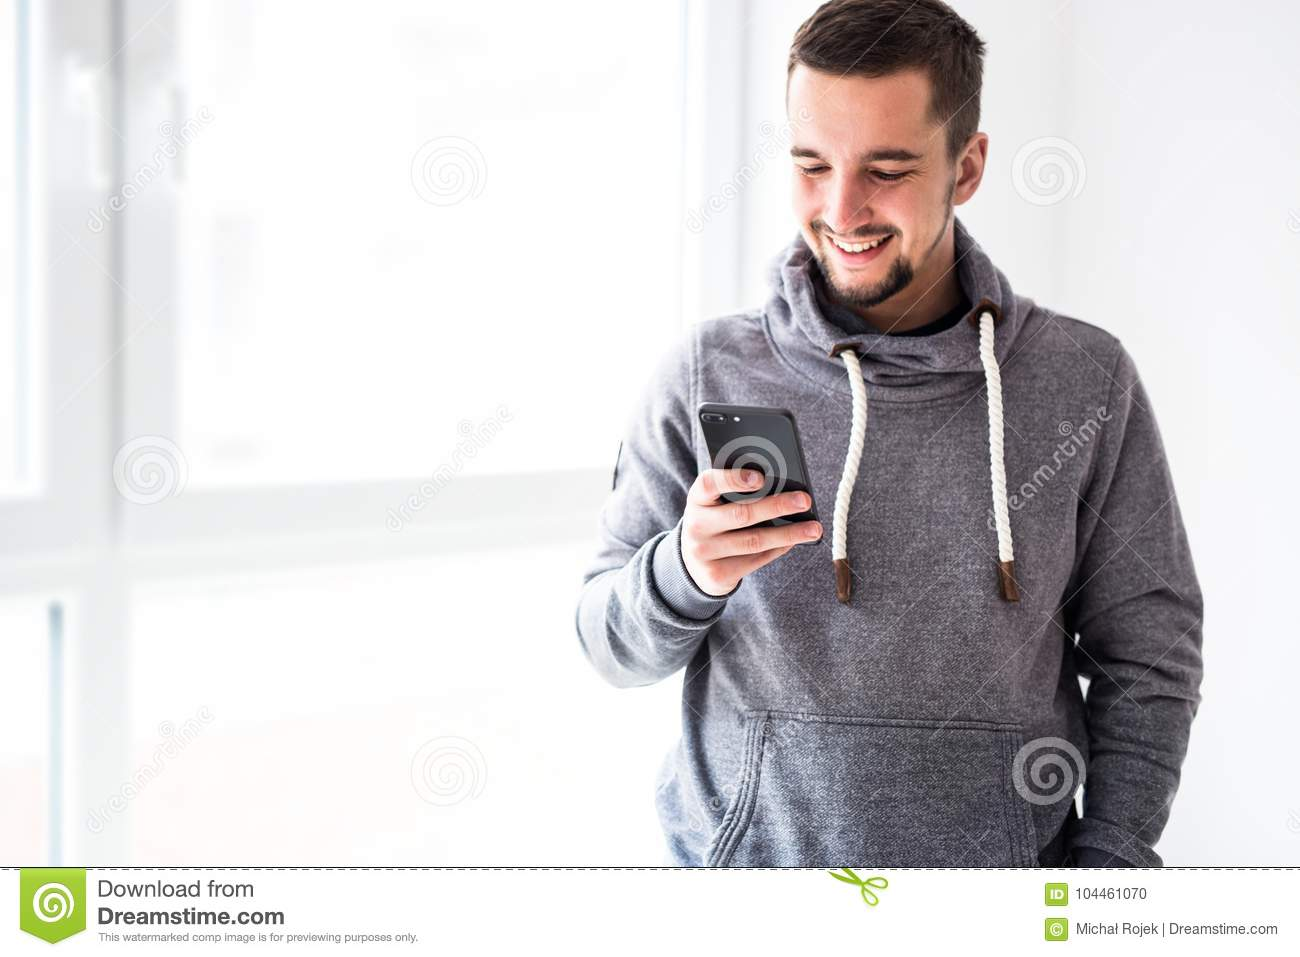 Man using smartphone in home interior